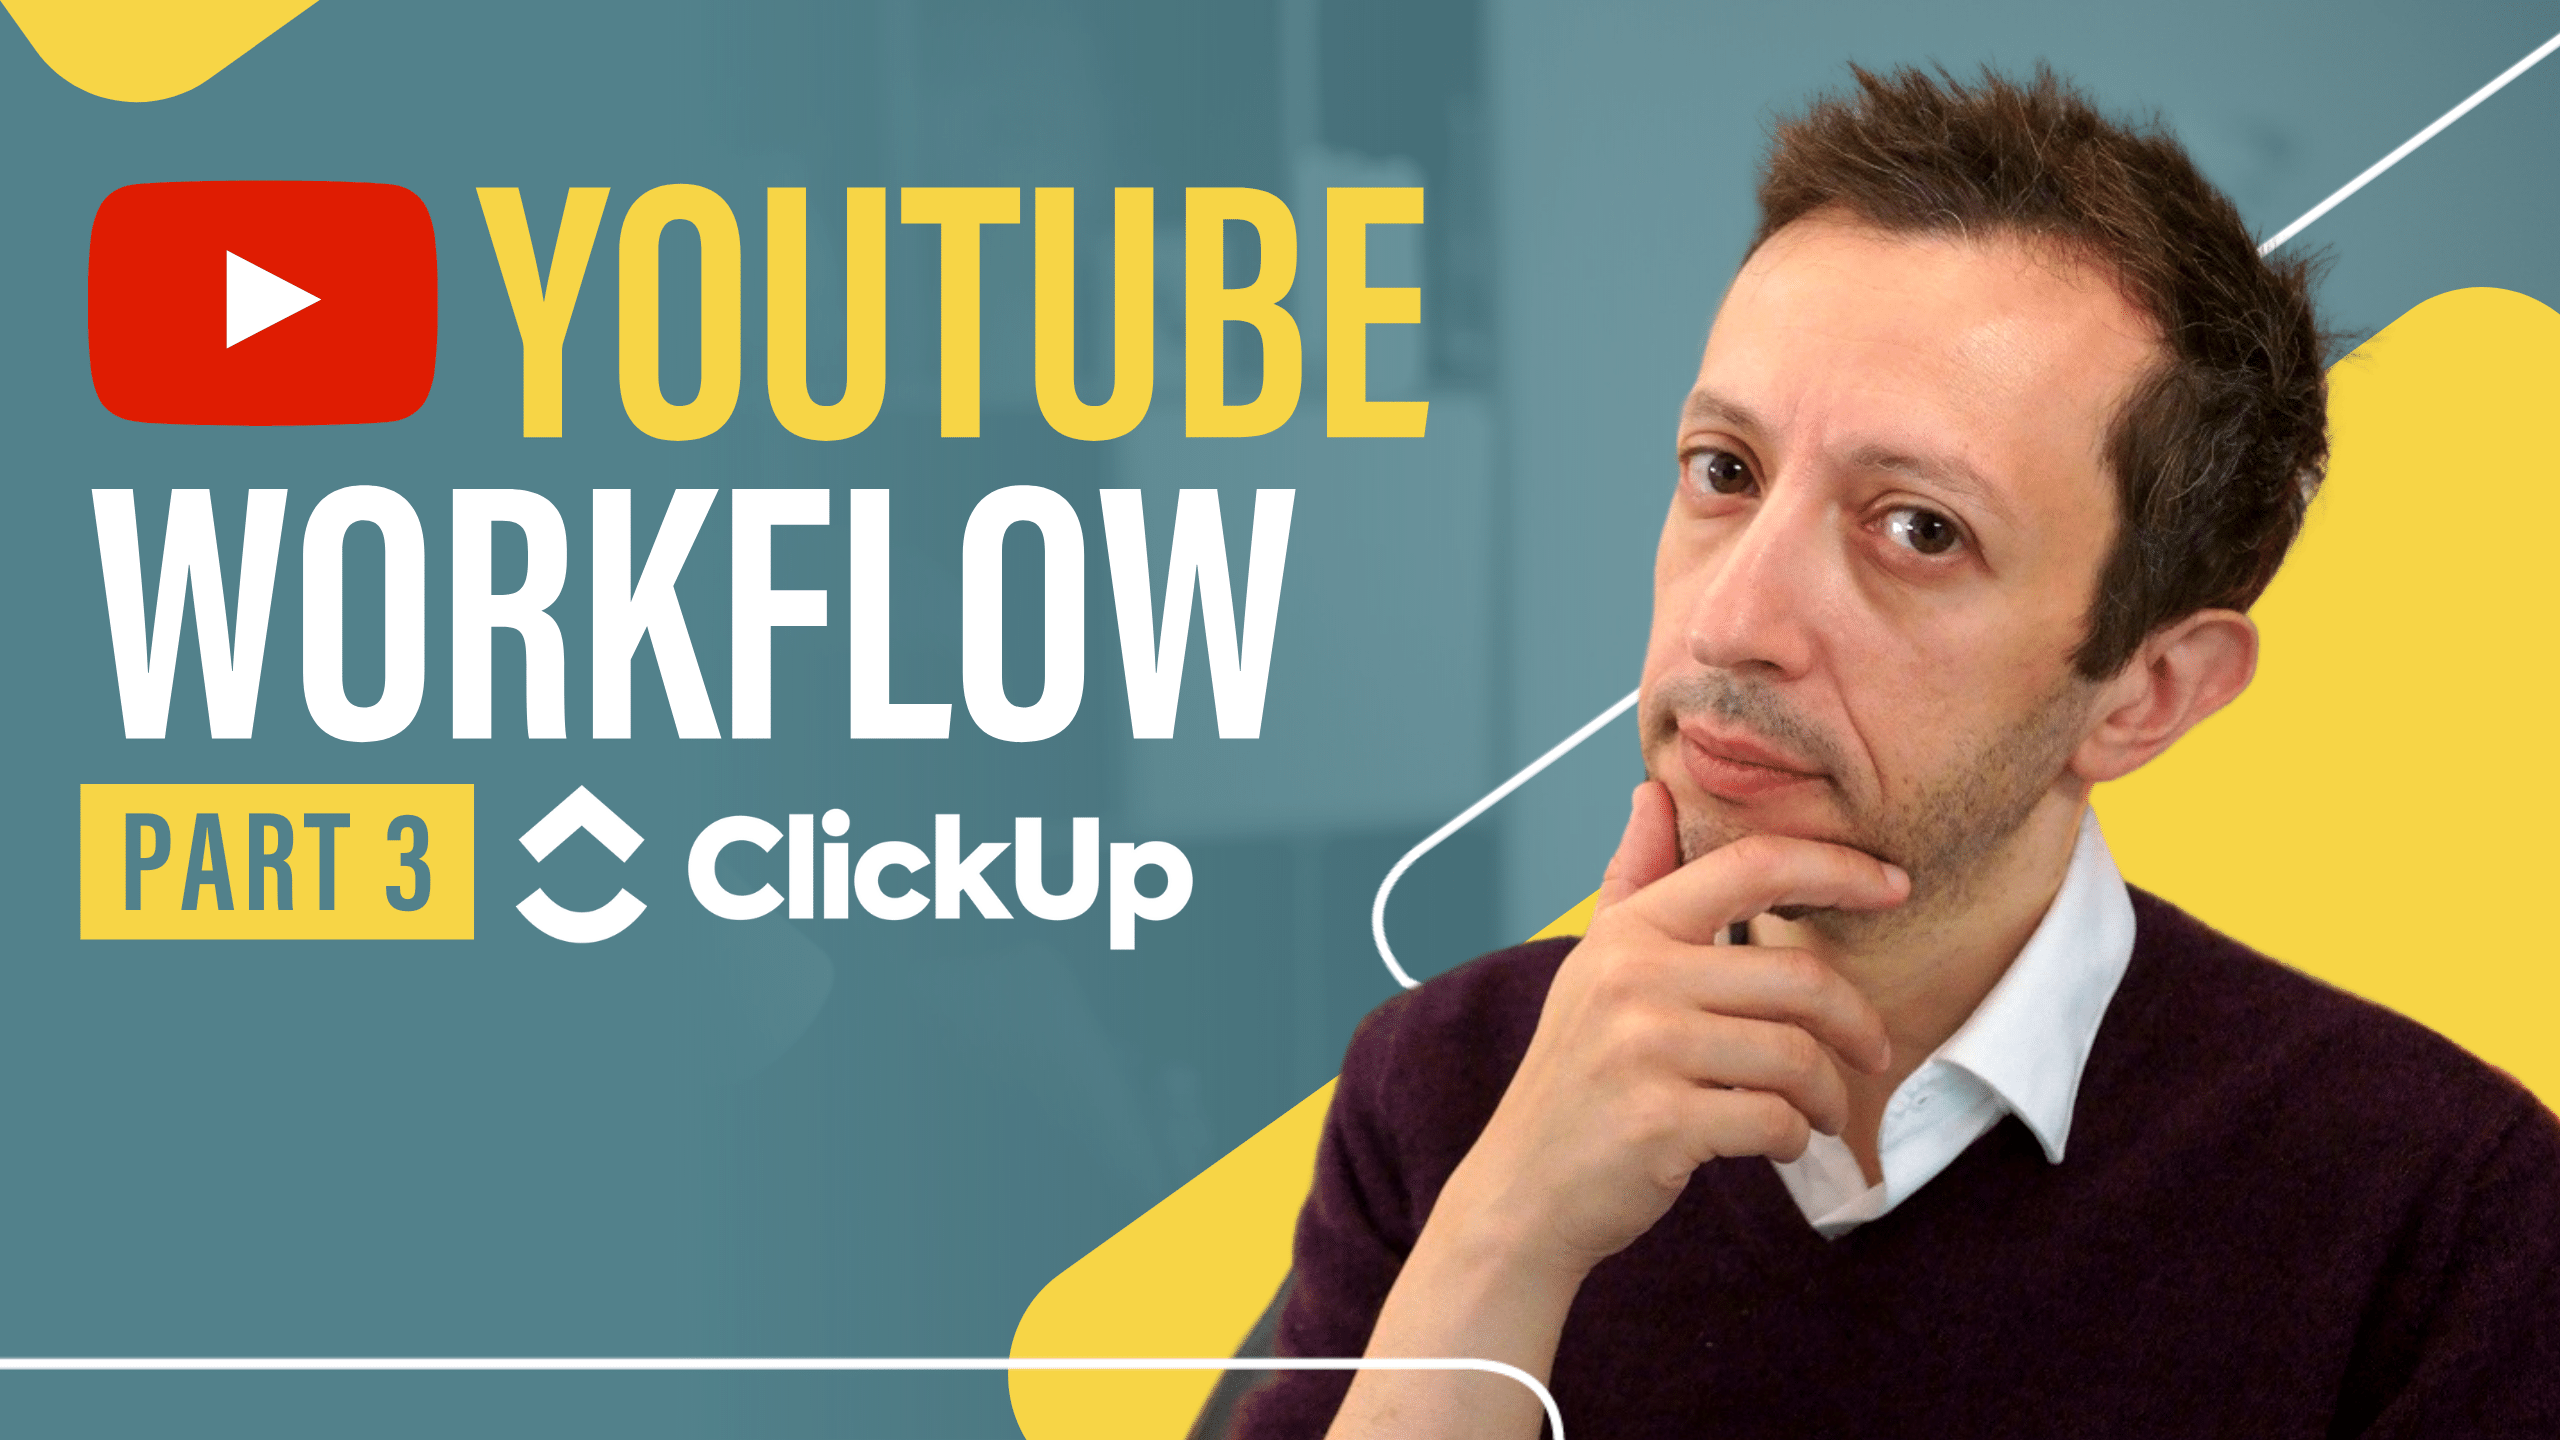 YouTube Workflow - Part 3 ClickUp